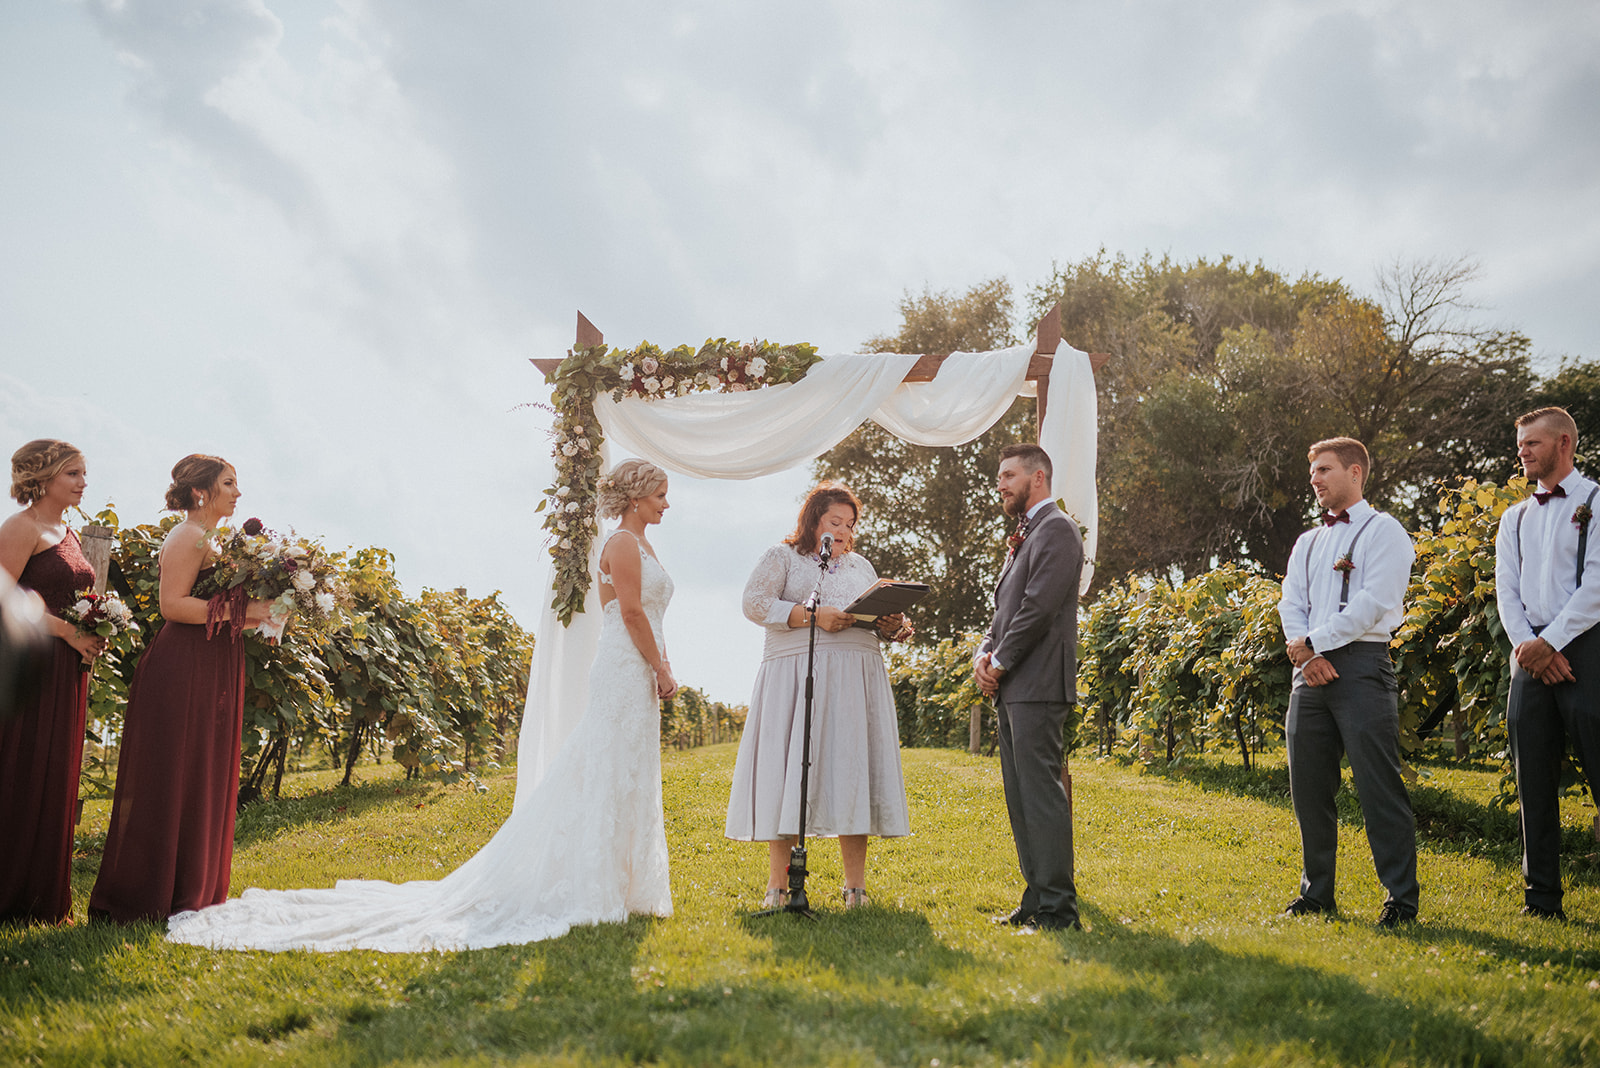 overthevineswisconsinwedding_0642.jpg